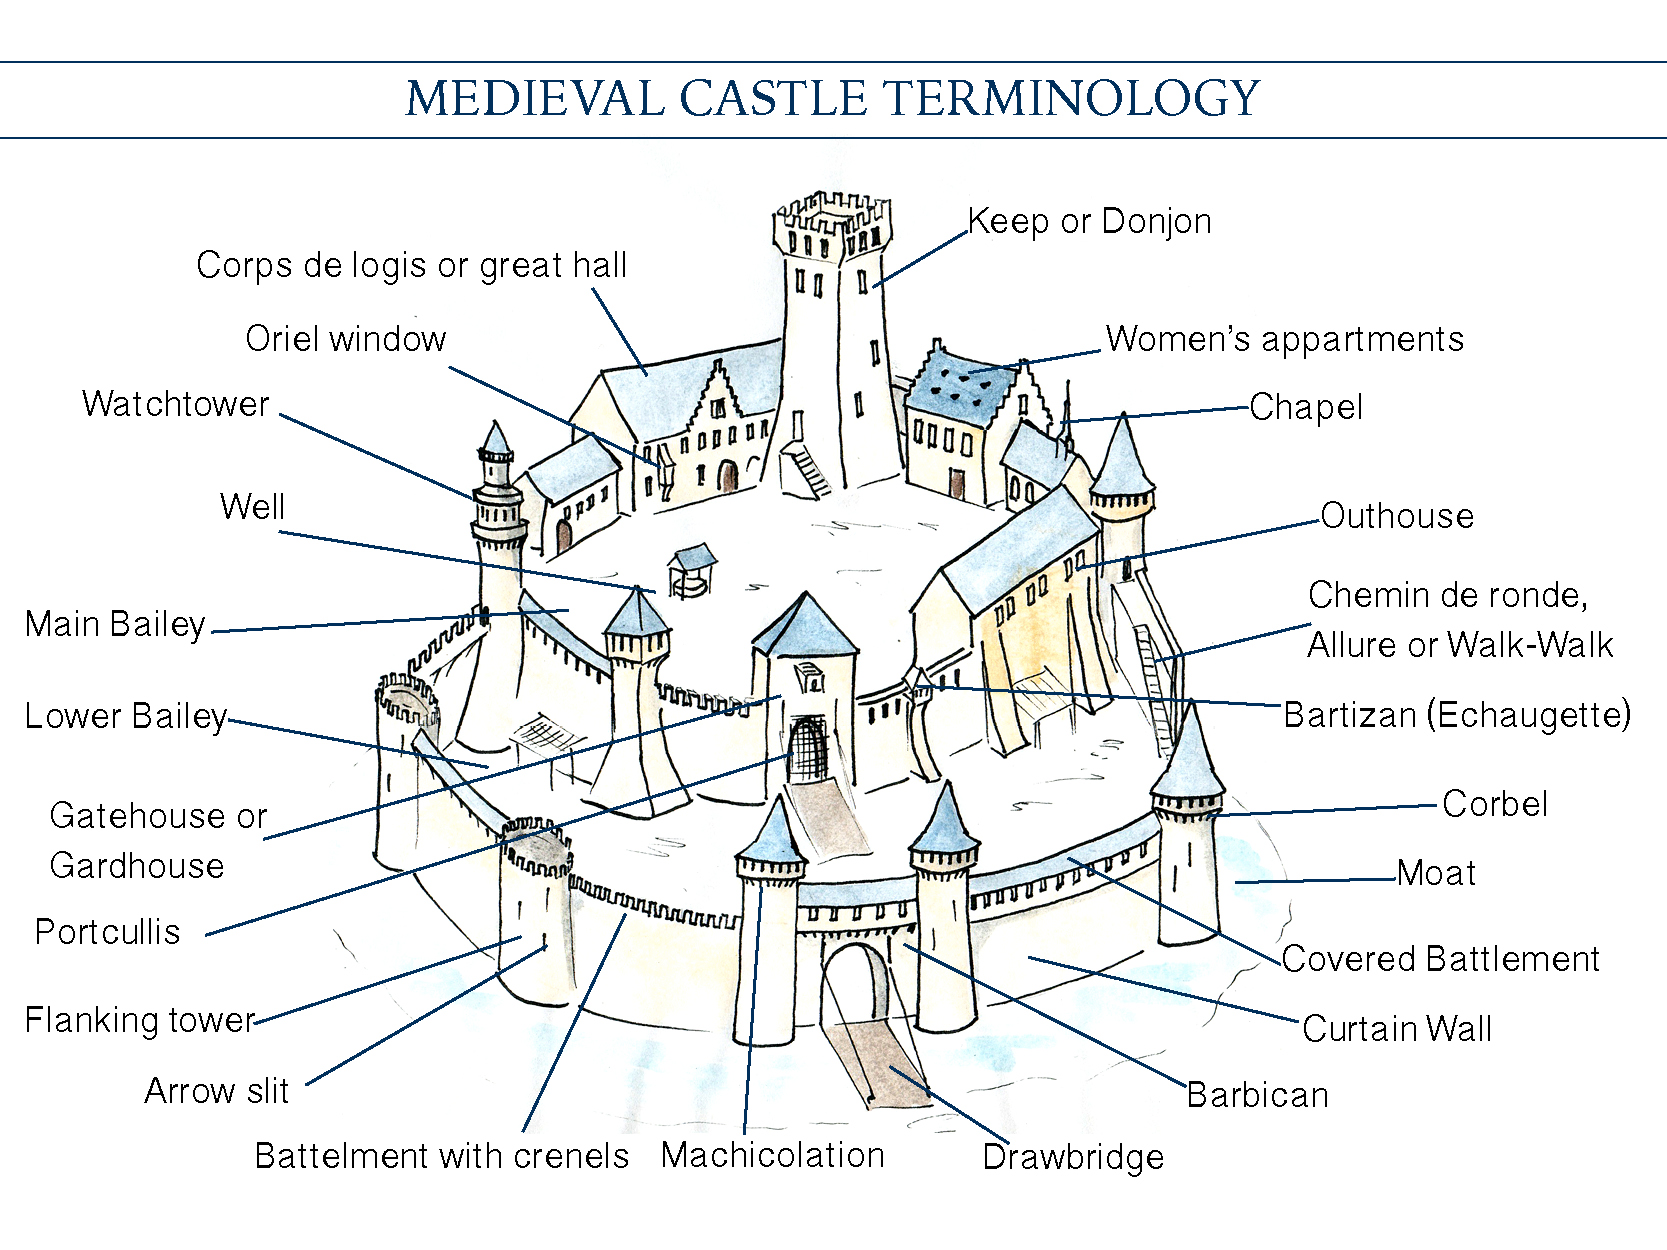 Church Floor Plan Designs A Pocket Guide To Medieval Castle Vocabulary Road Trips